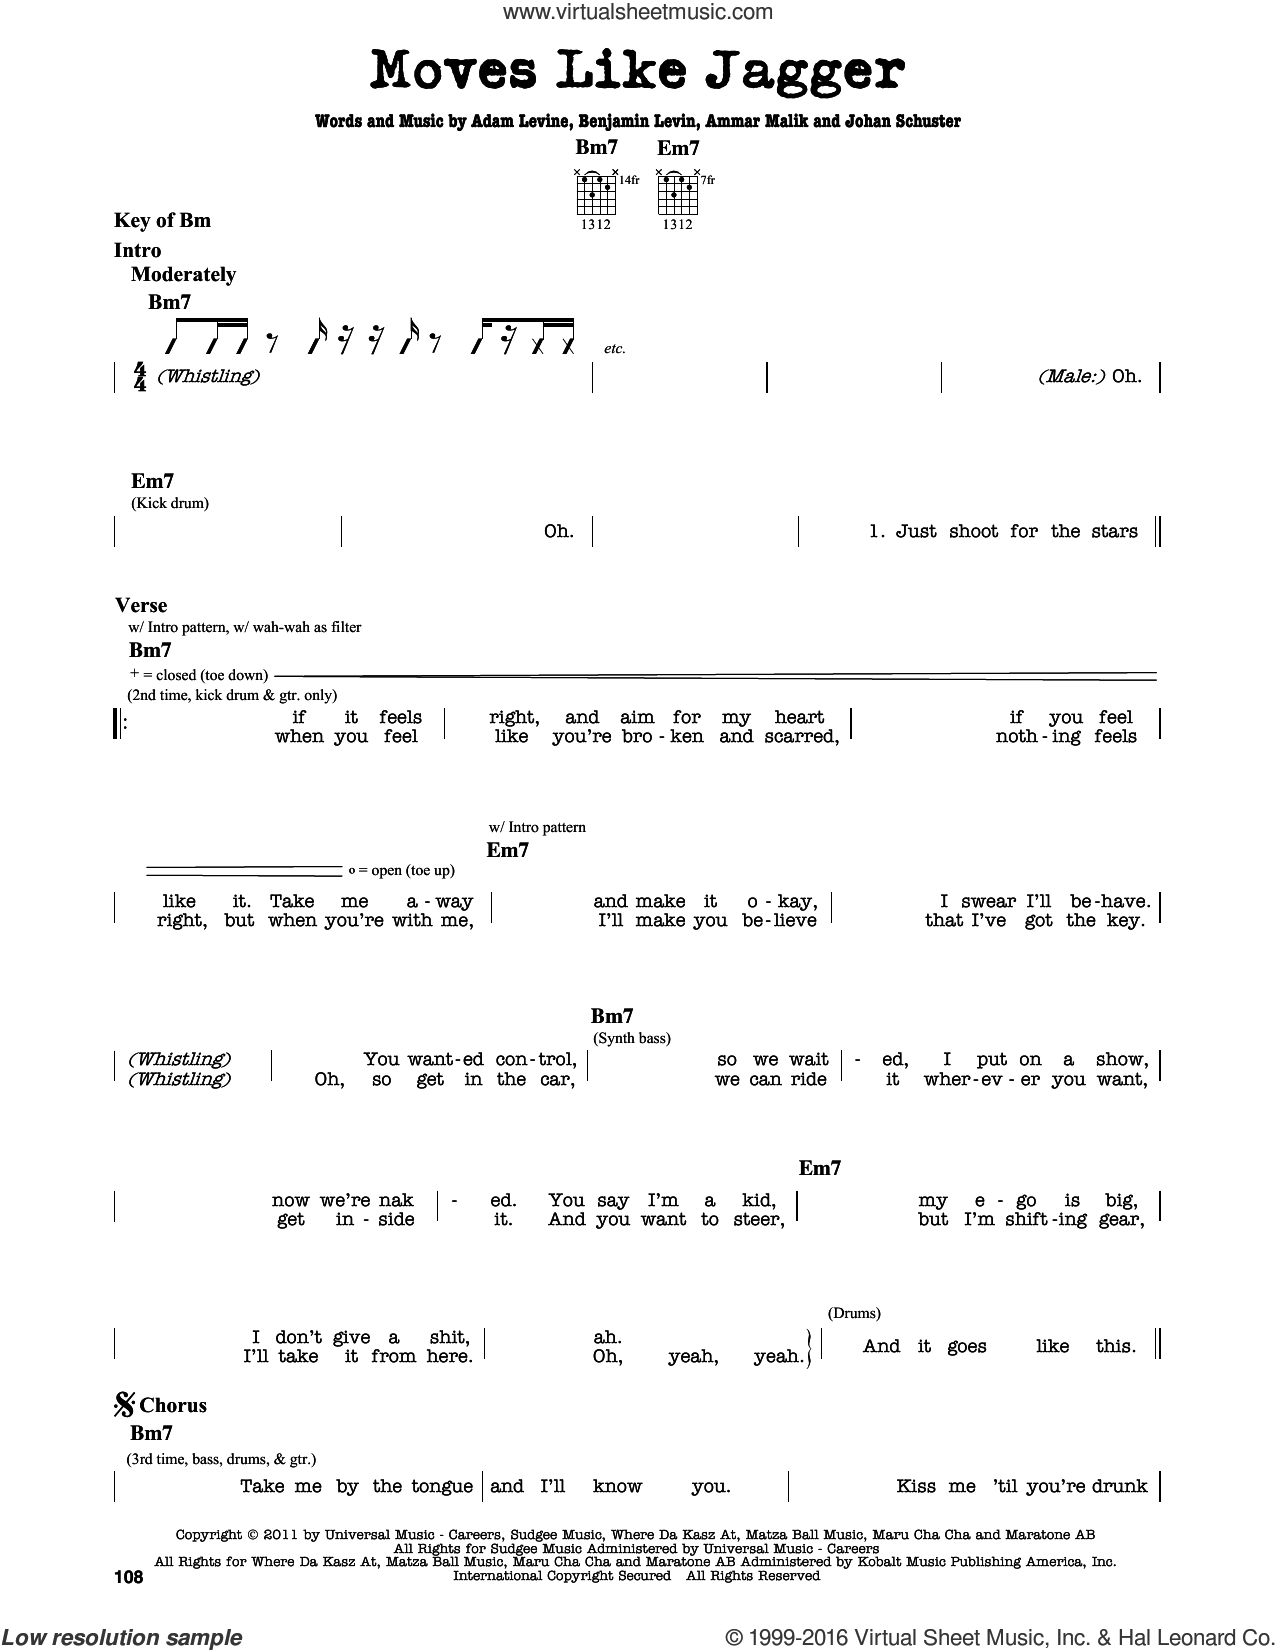 Moves Like Jagger sheet music for guitar solo (lead sheet) by Maroon 5 featuring Christina Aguilera, Adam Levine, Ammar Malik, Benjamin Levin and Johan Schuster, intermediate guitar (lead sheet)